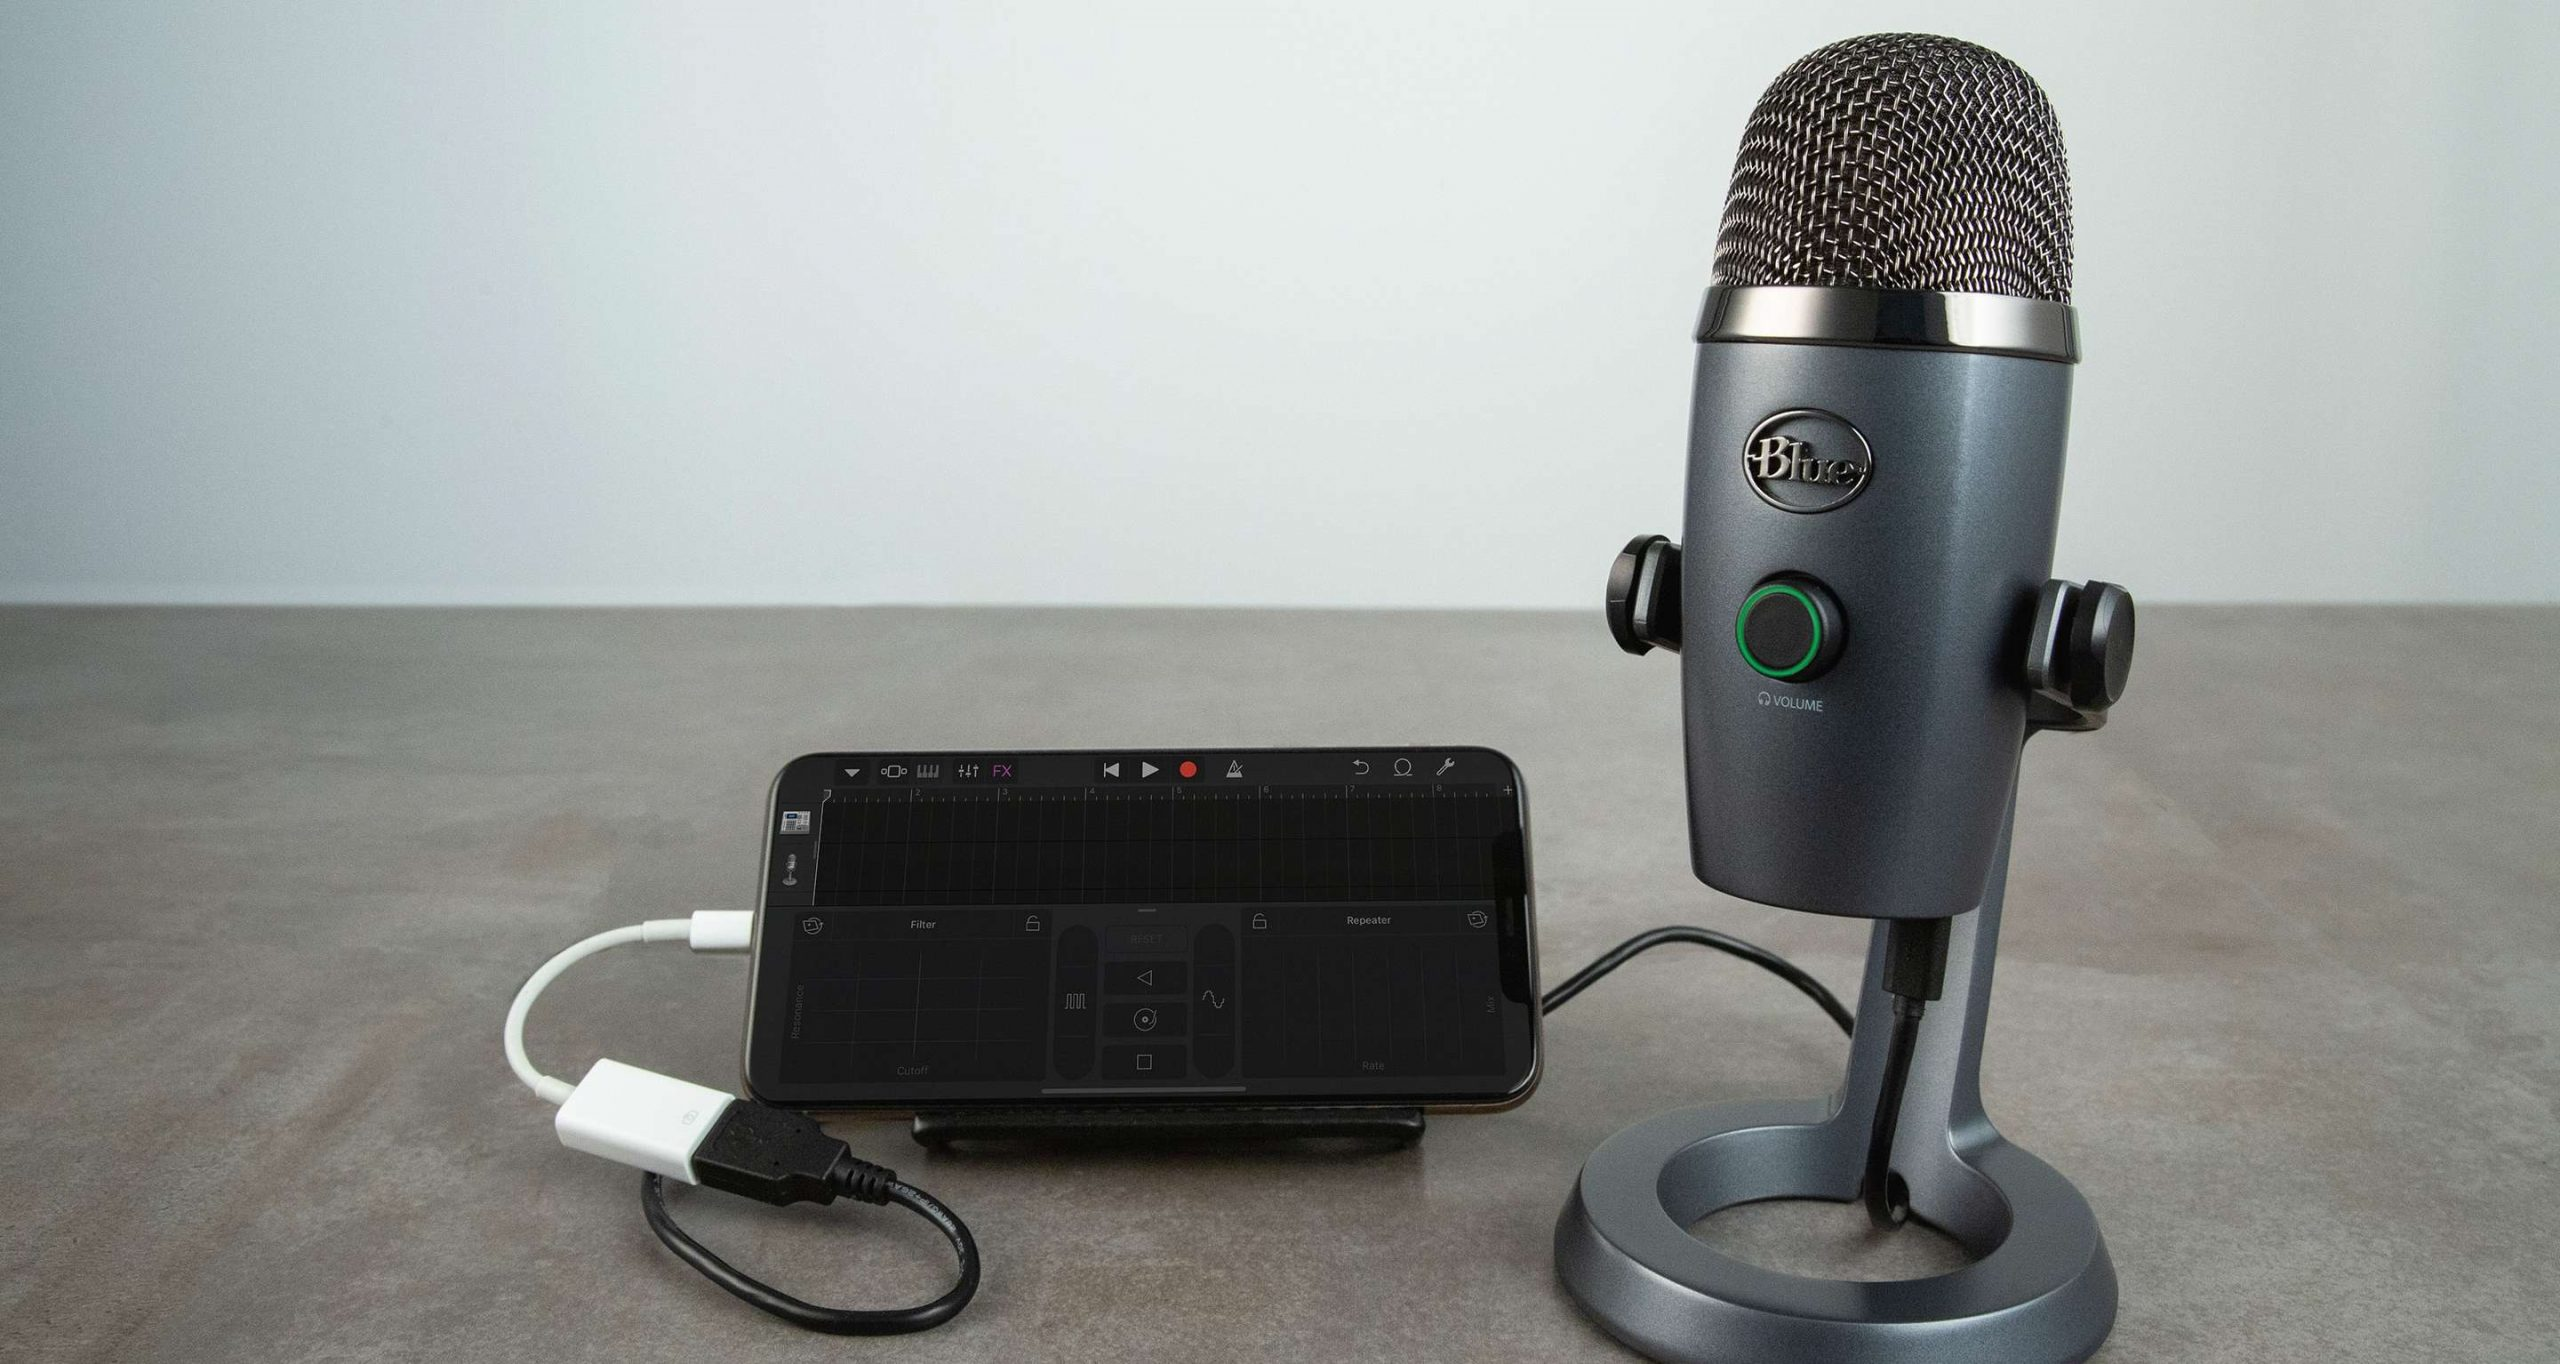 How to Use Blue USB Microphones with an iPhone, iPad, or Android Device